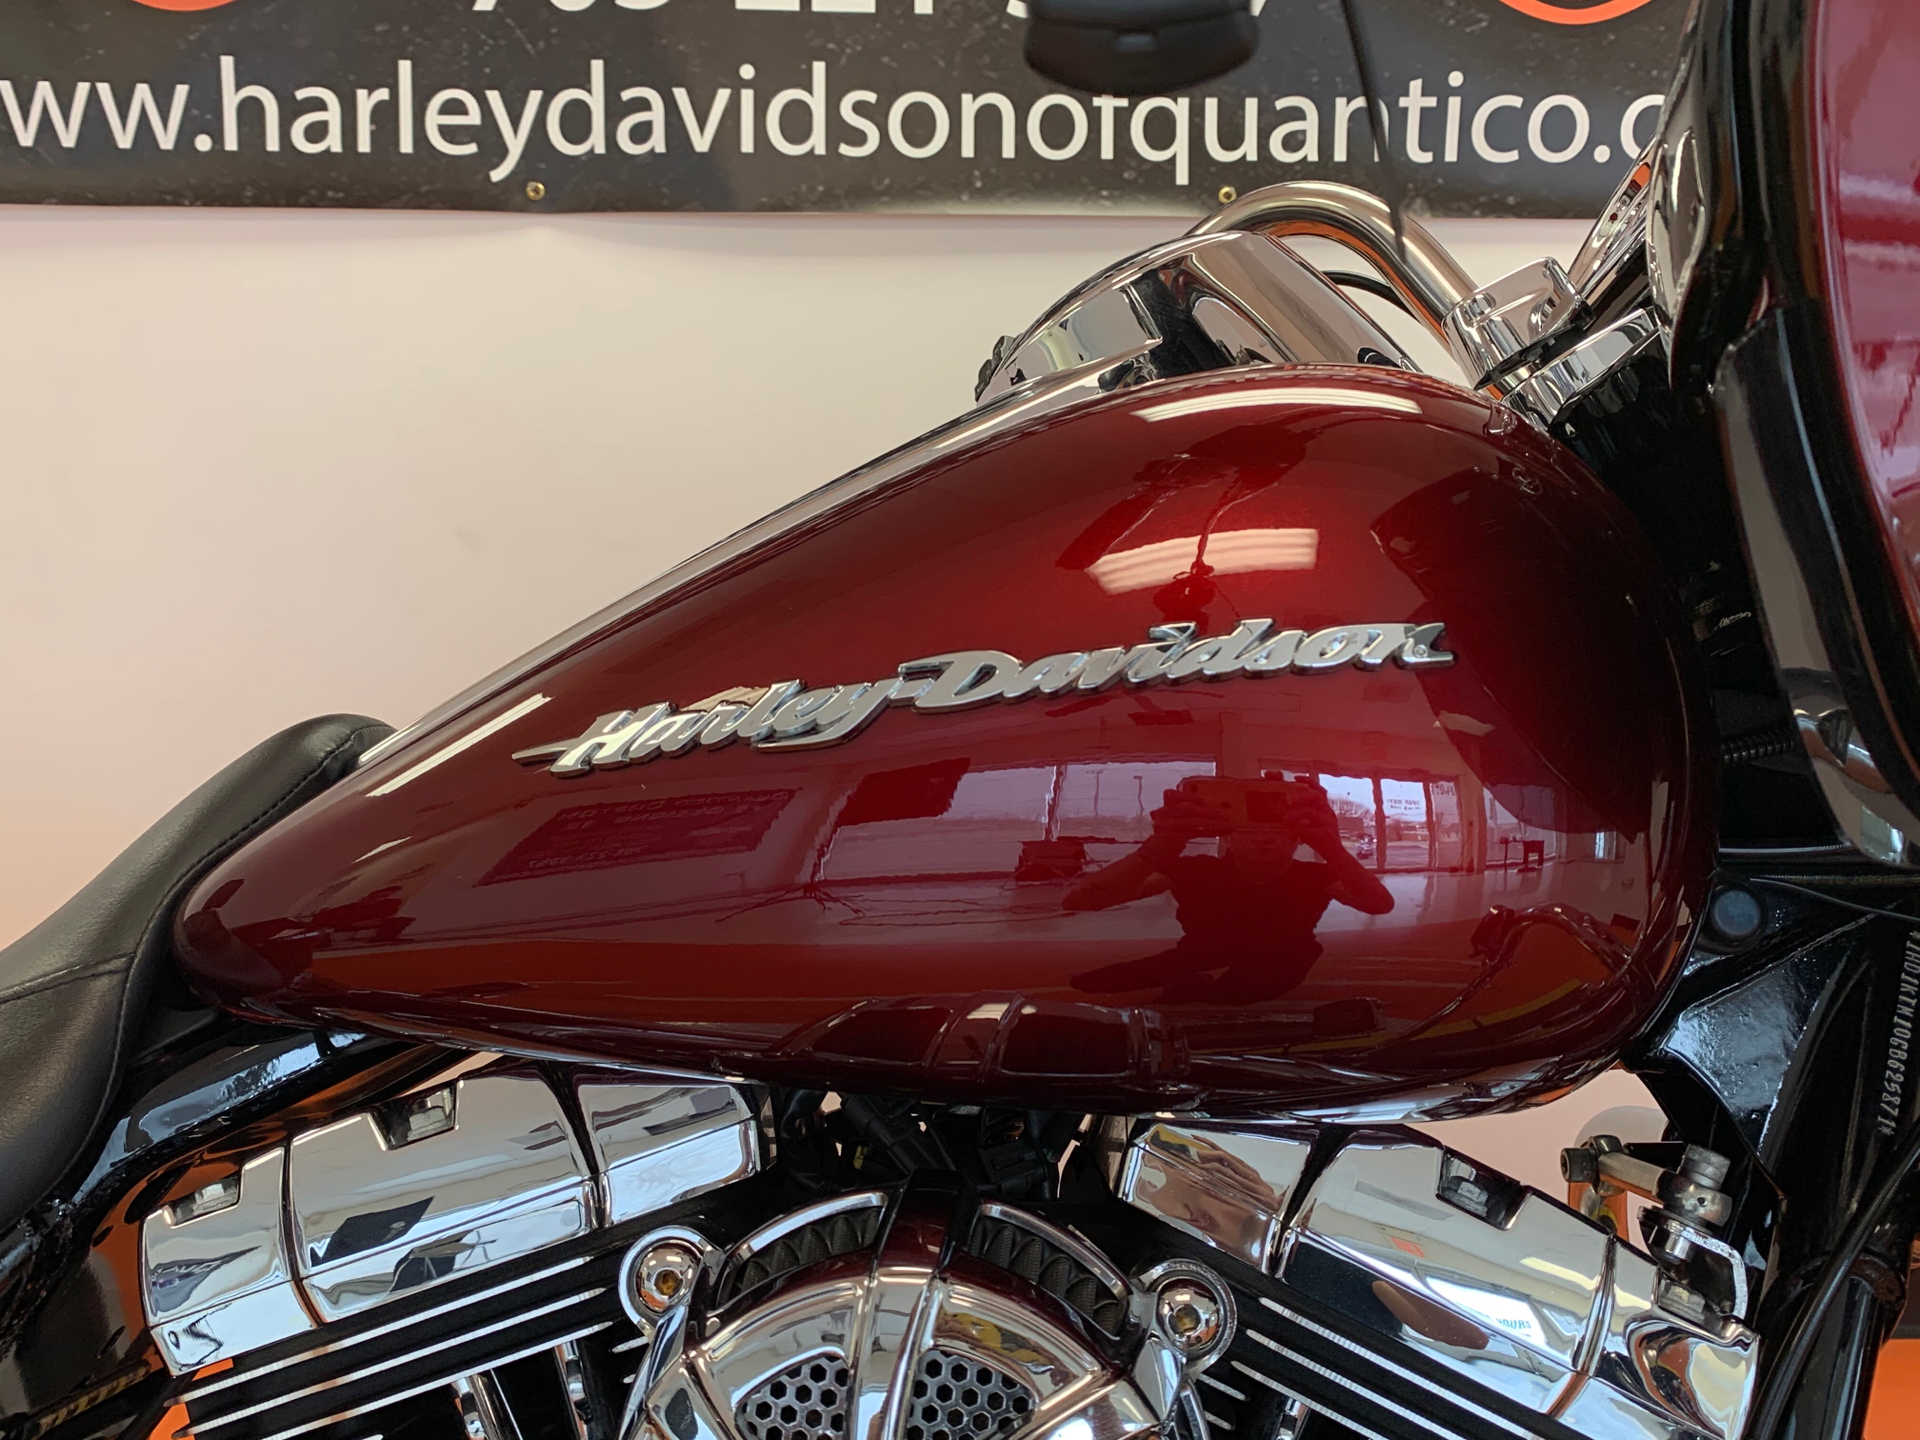 2016 Harley-Davidson Road Glide® Special in Dumfries, Virginia - Photo 2